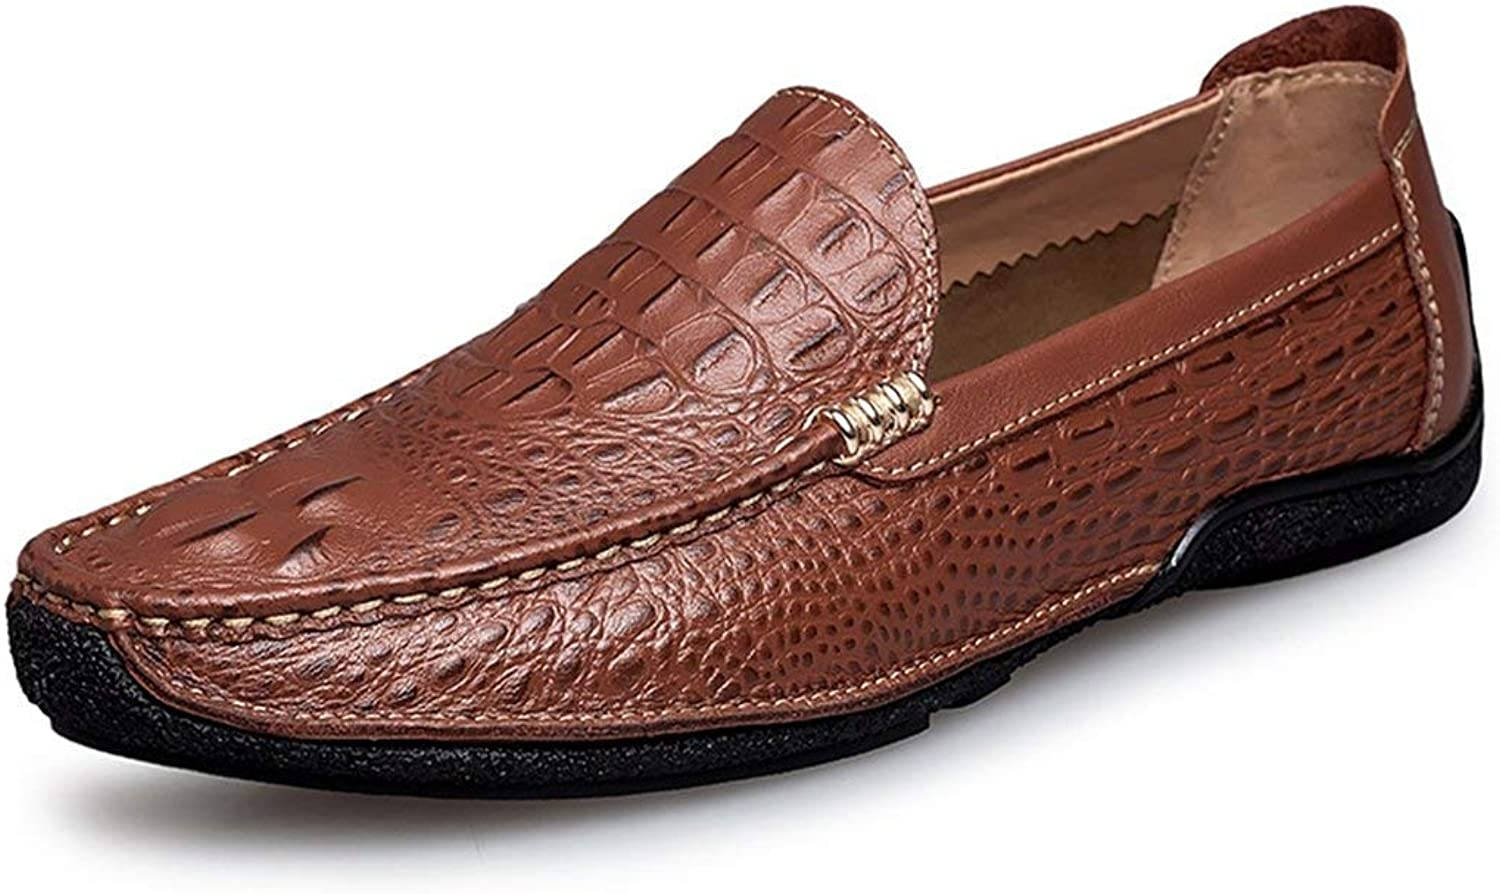 Qiusa Boy's Herren Snake braun Stilvolle Slip-on Casual Loafers UK 8 (Farbe   -, Gre   -)